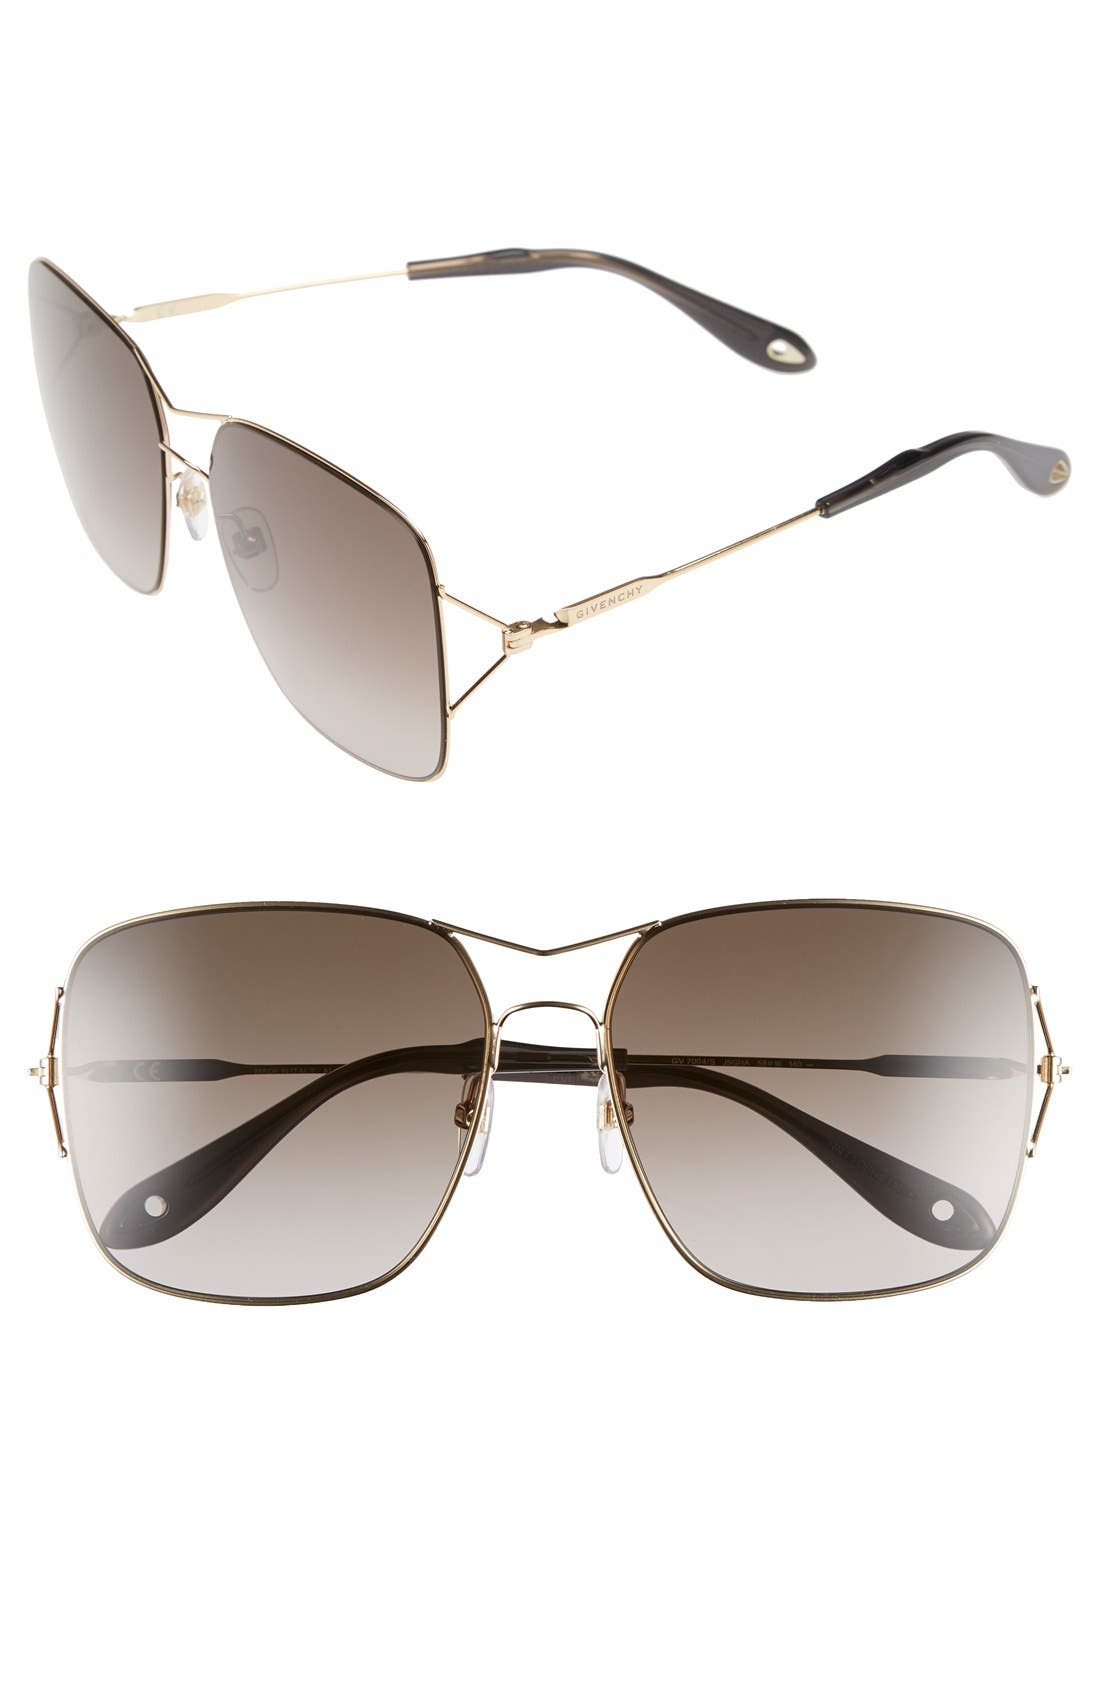 GIVENCHY METAL DOUBLE-WIRE SQUARE SUNGLASSES, COPPER/GRN